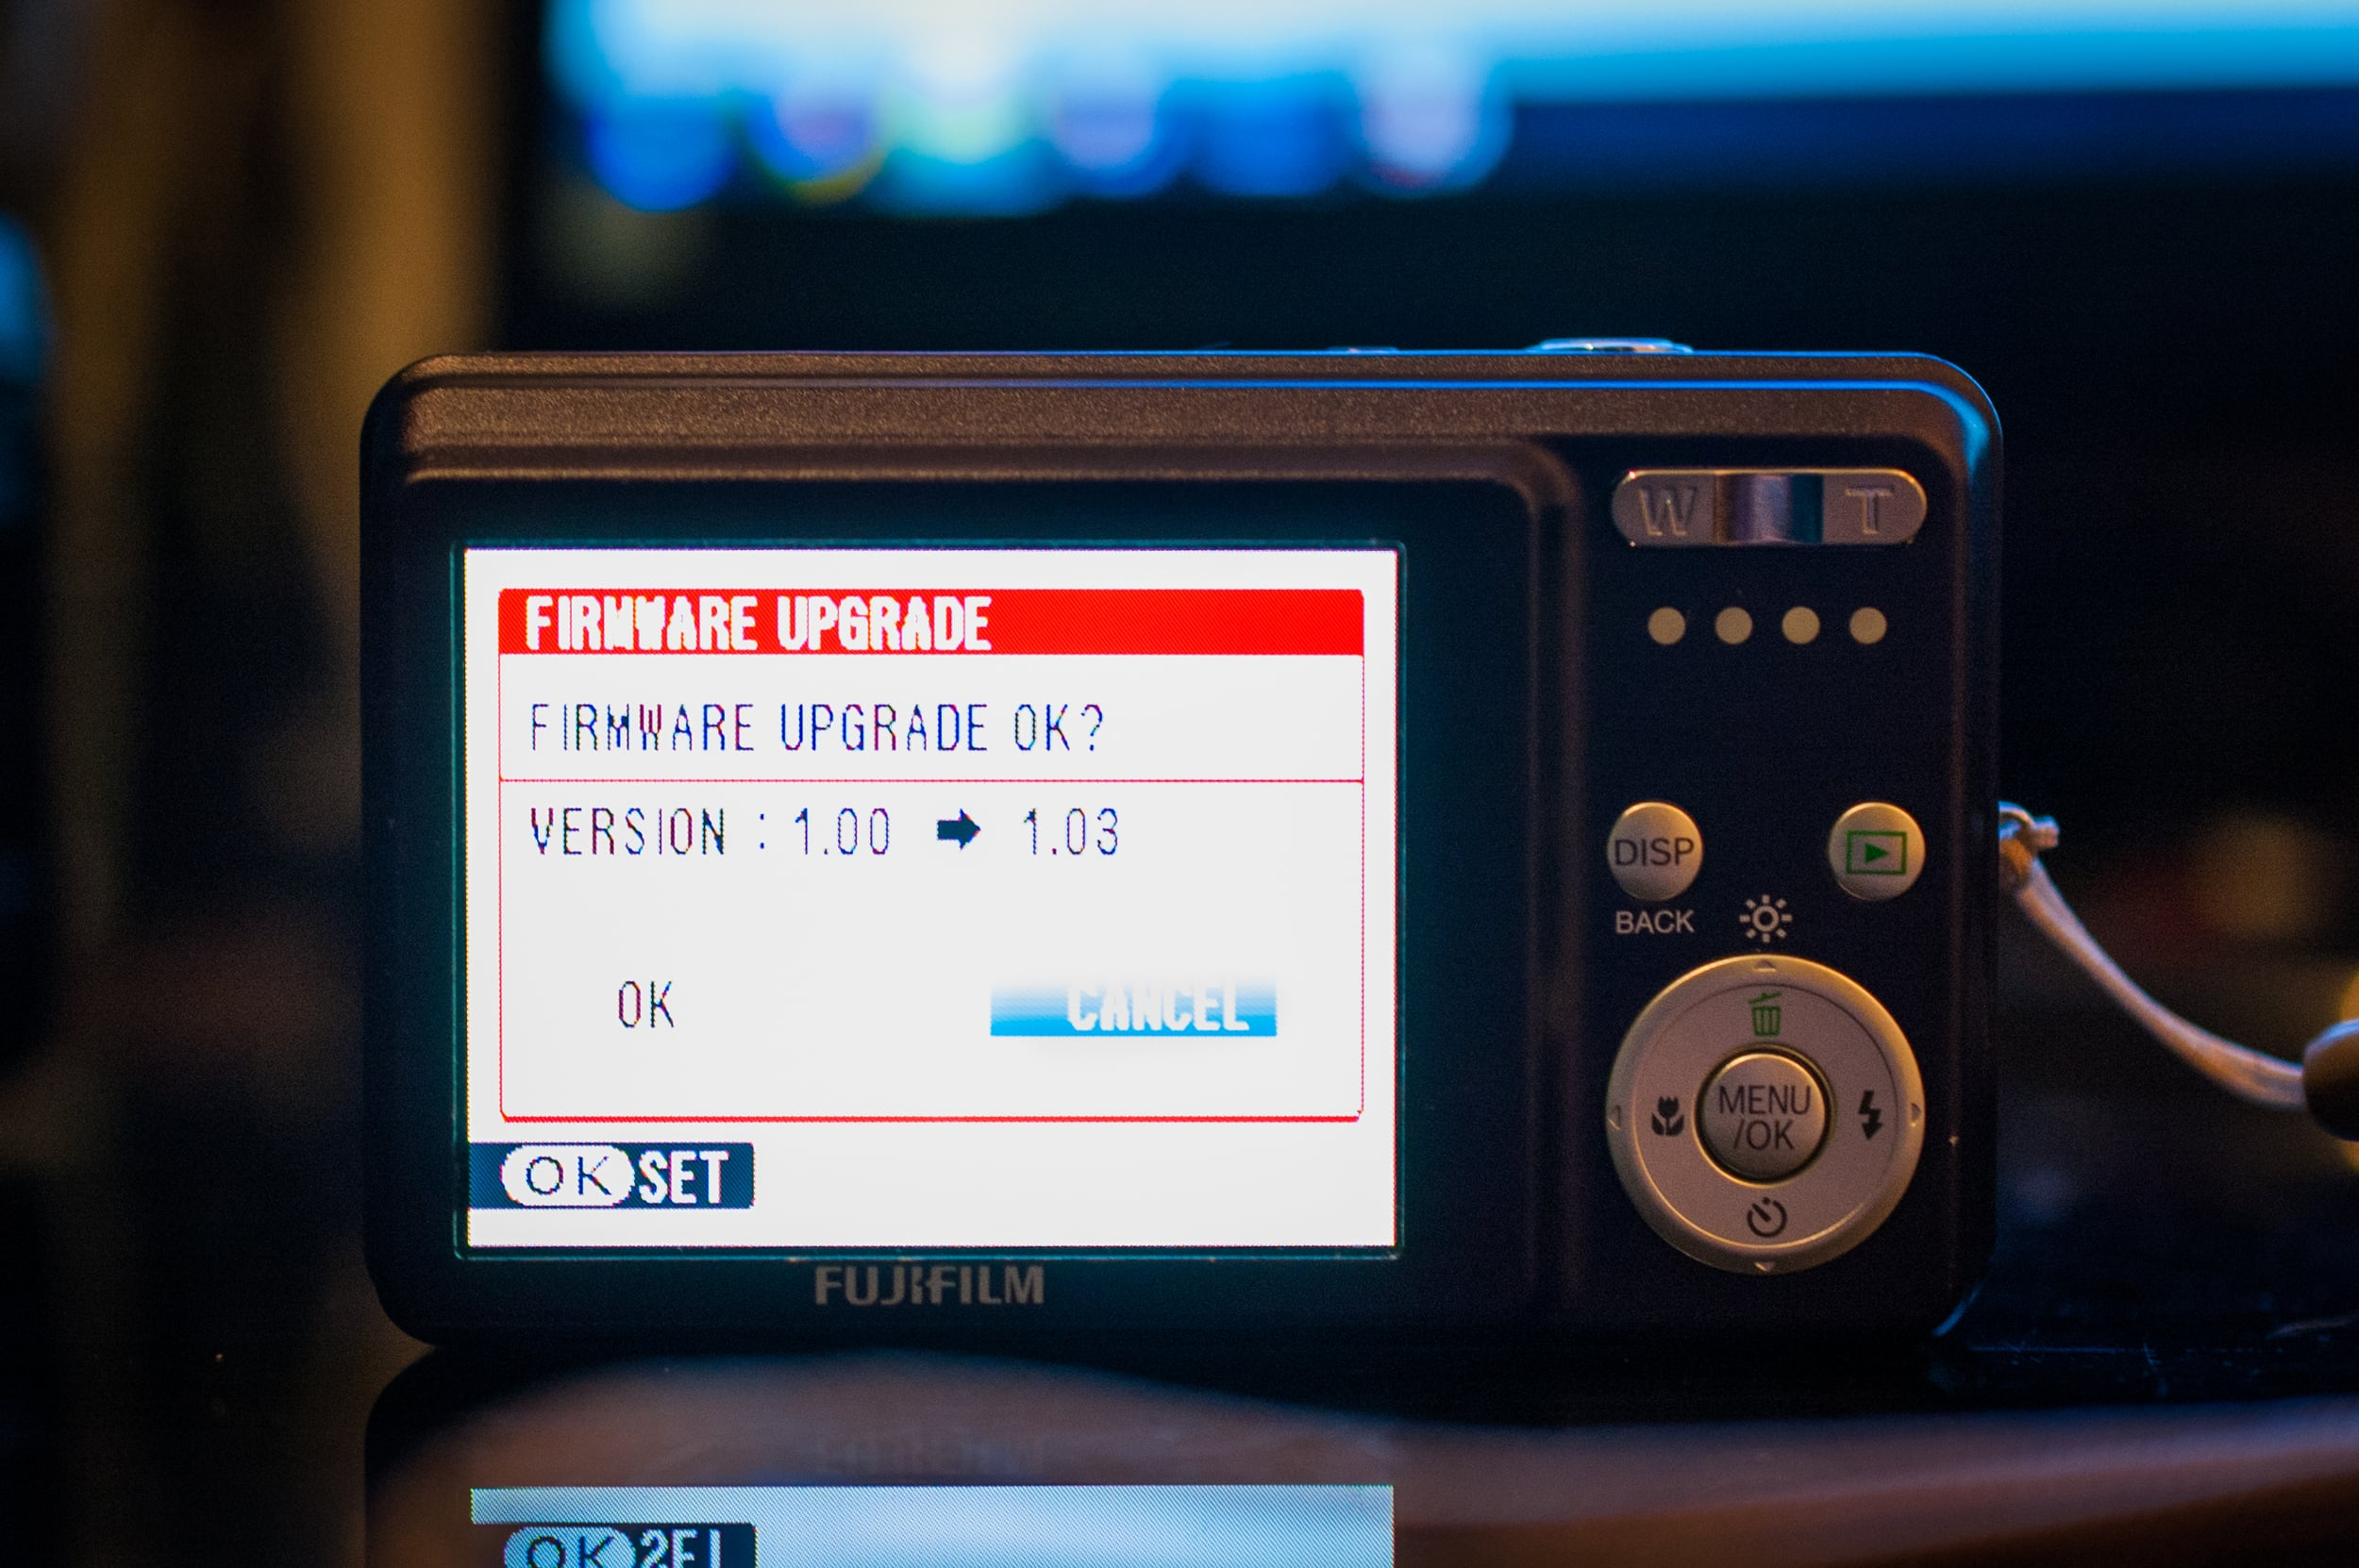 Fuji J10 getting a firmware update